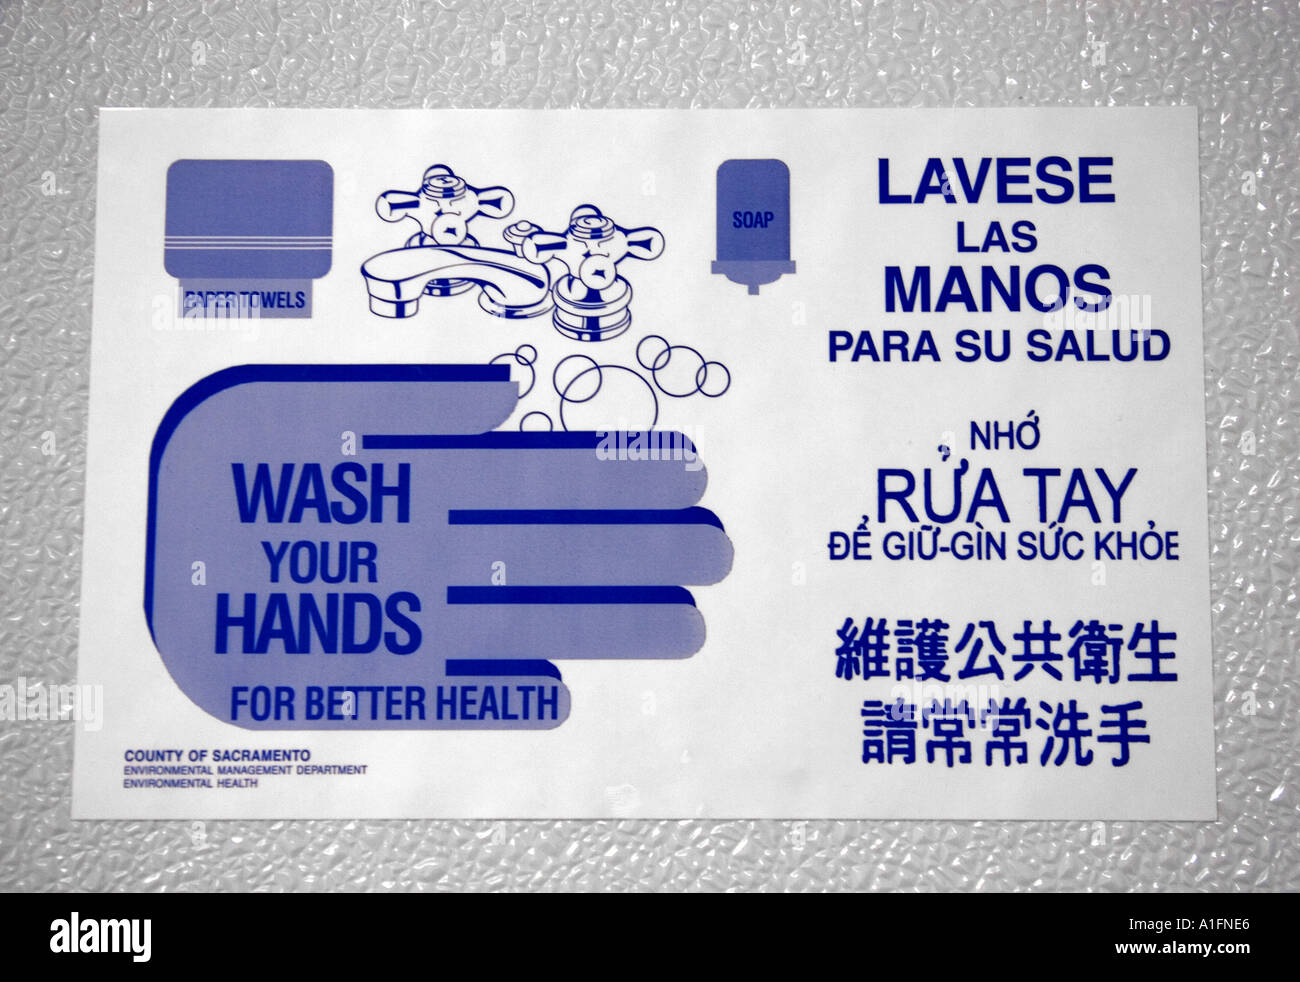 Wash Your Hands Sign In A Bathroom Showing Different